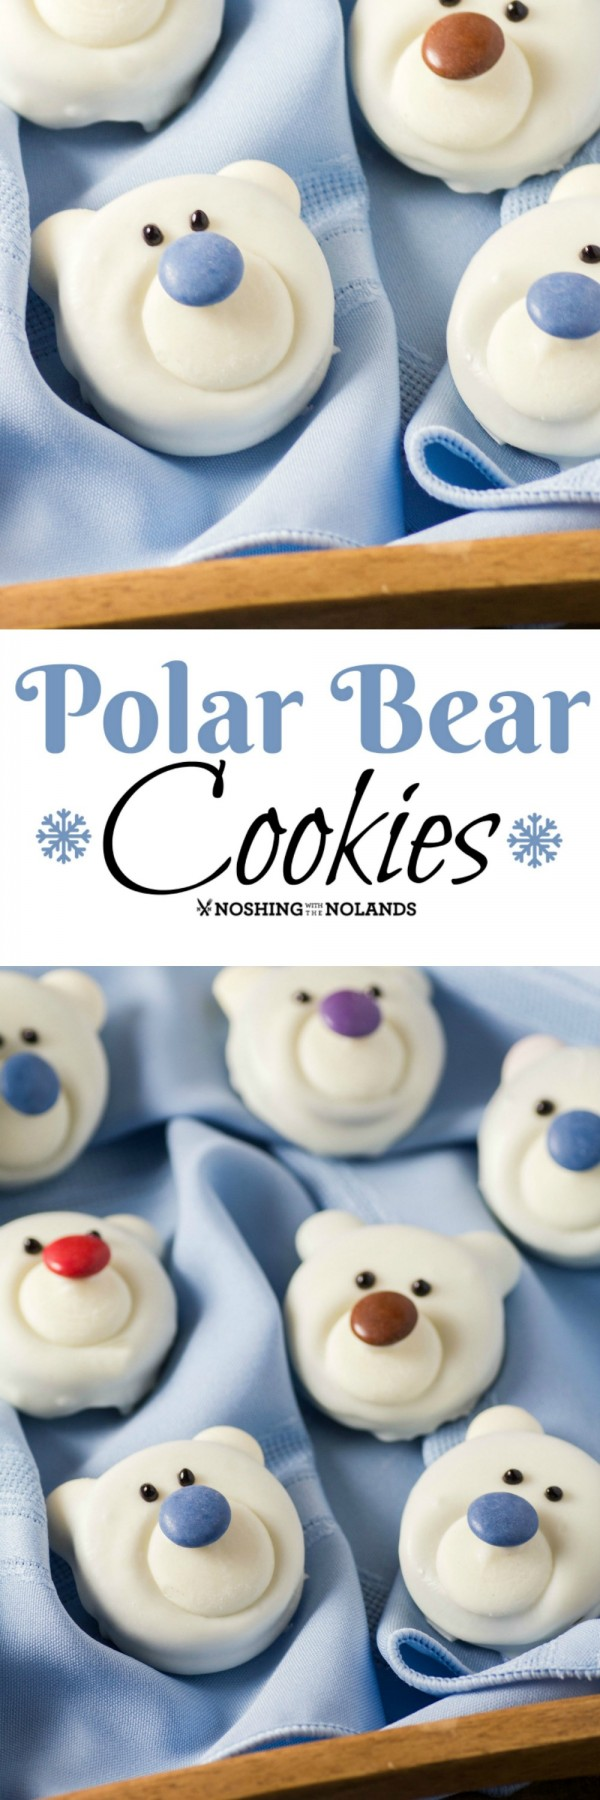 Get the recipe Polar Beer Cookies @recipes_to_go